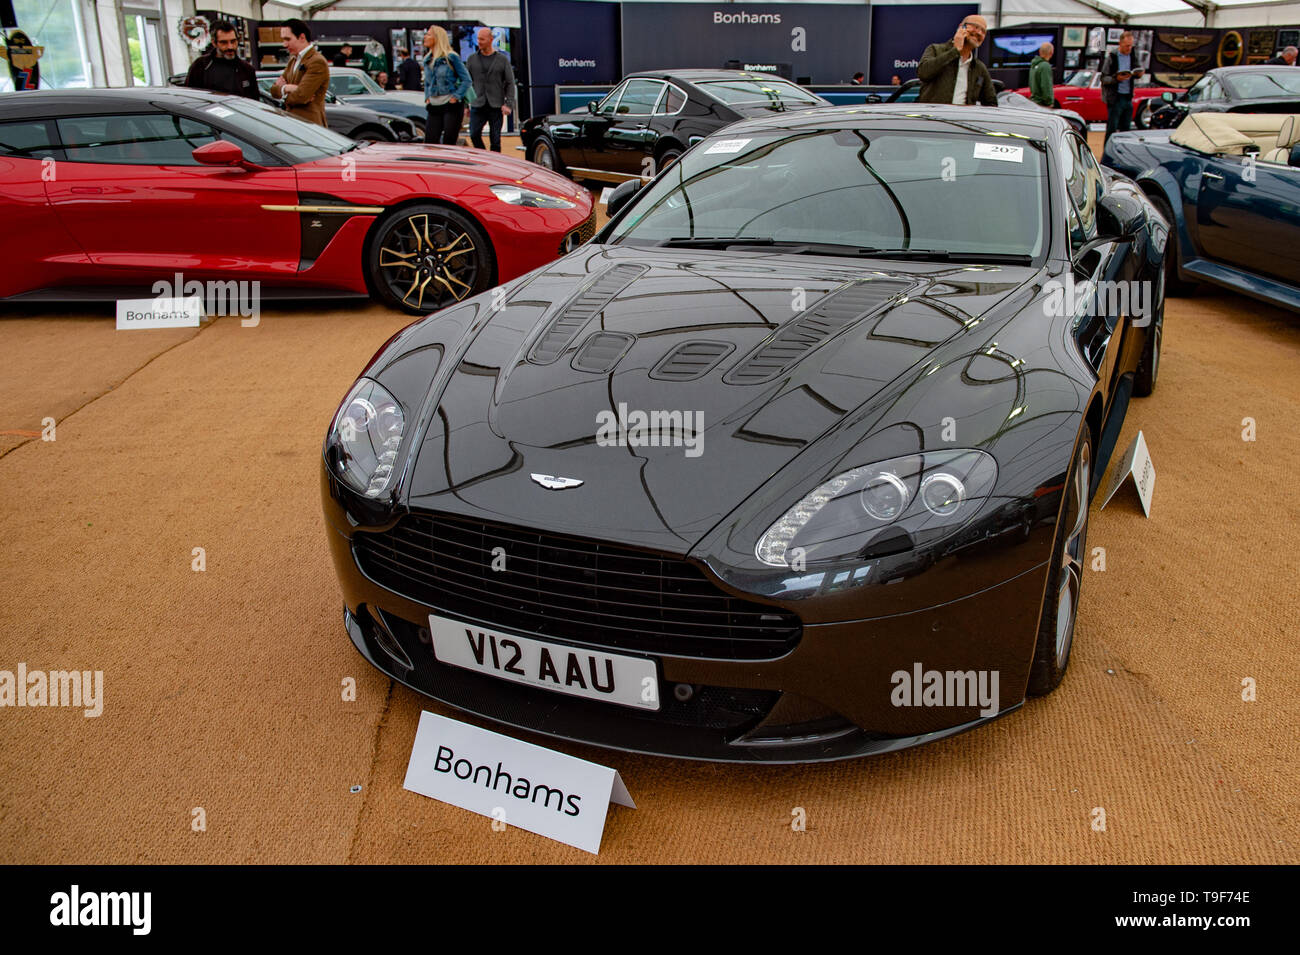 High Wycombe, United Kingdom  18 May 2019  Bonhams put Aston